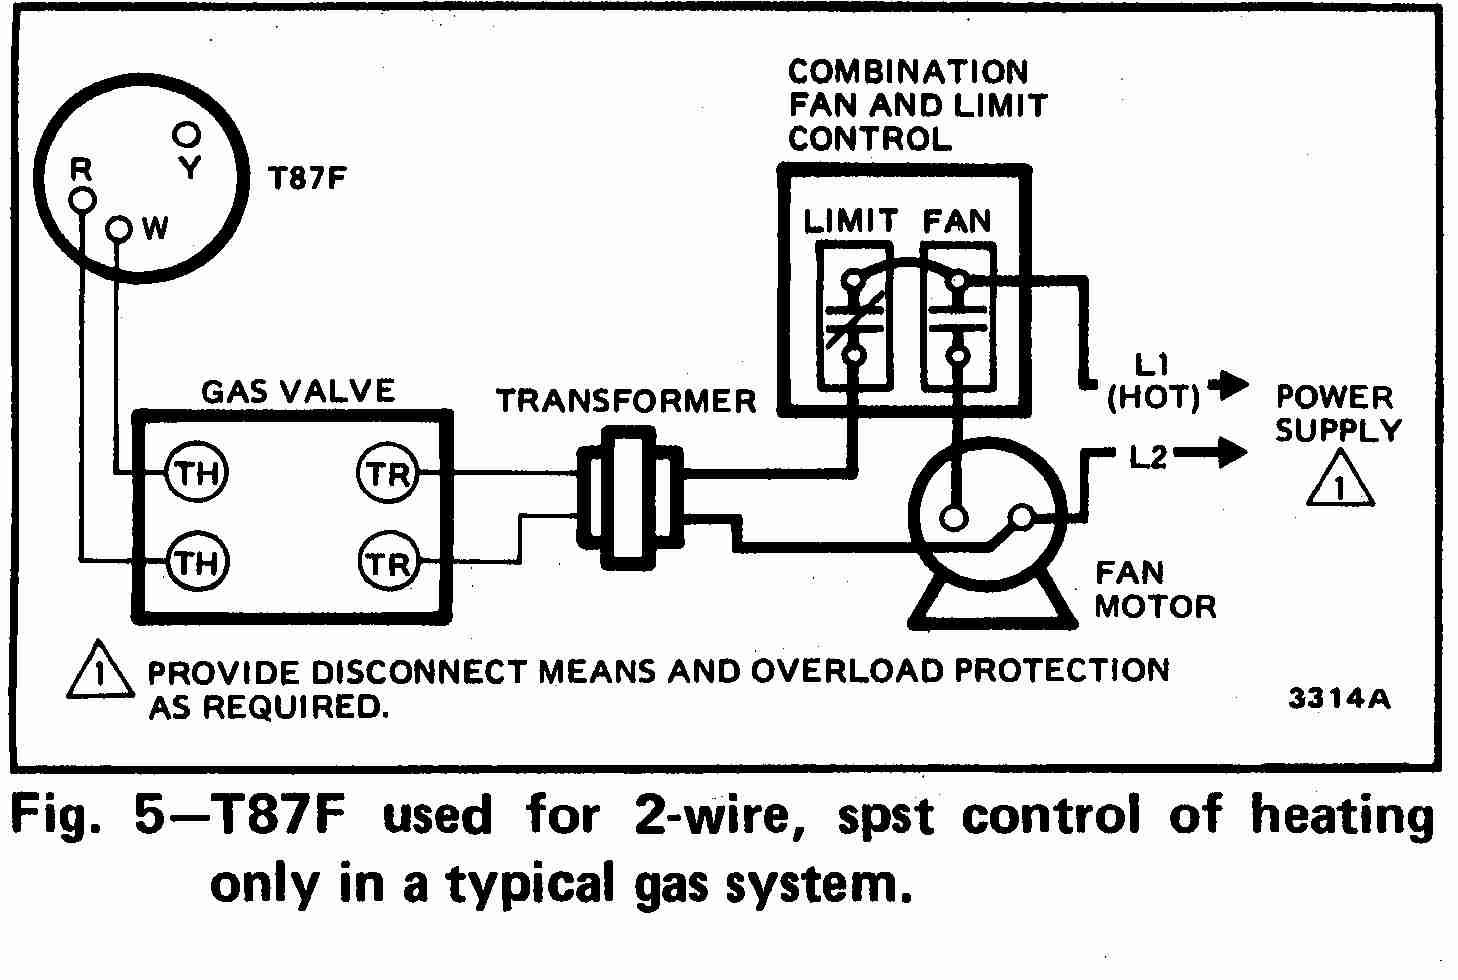 hight resolution of room thermostat wiring diagrams for hvac systems hvac compressor diagram hvac wiring diagrams